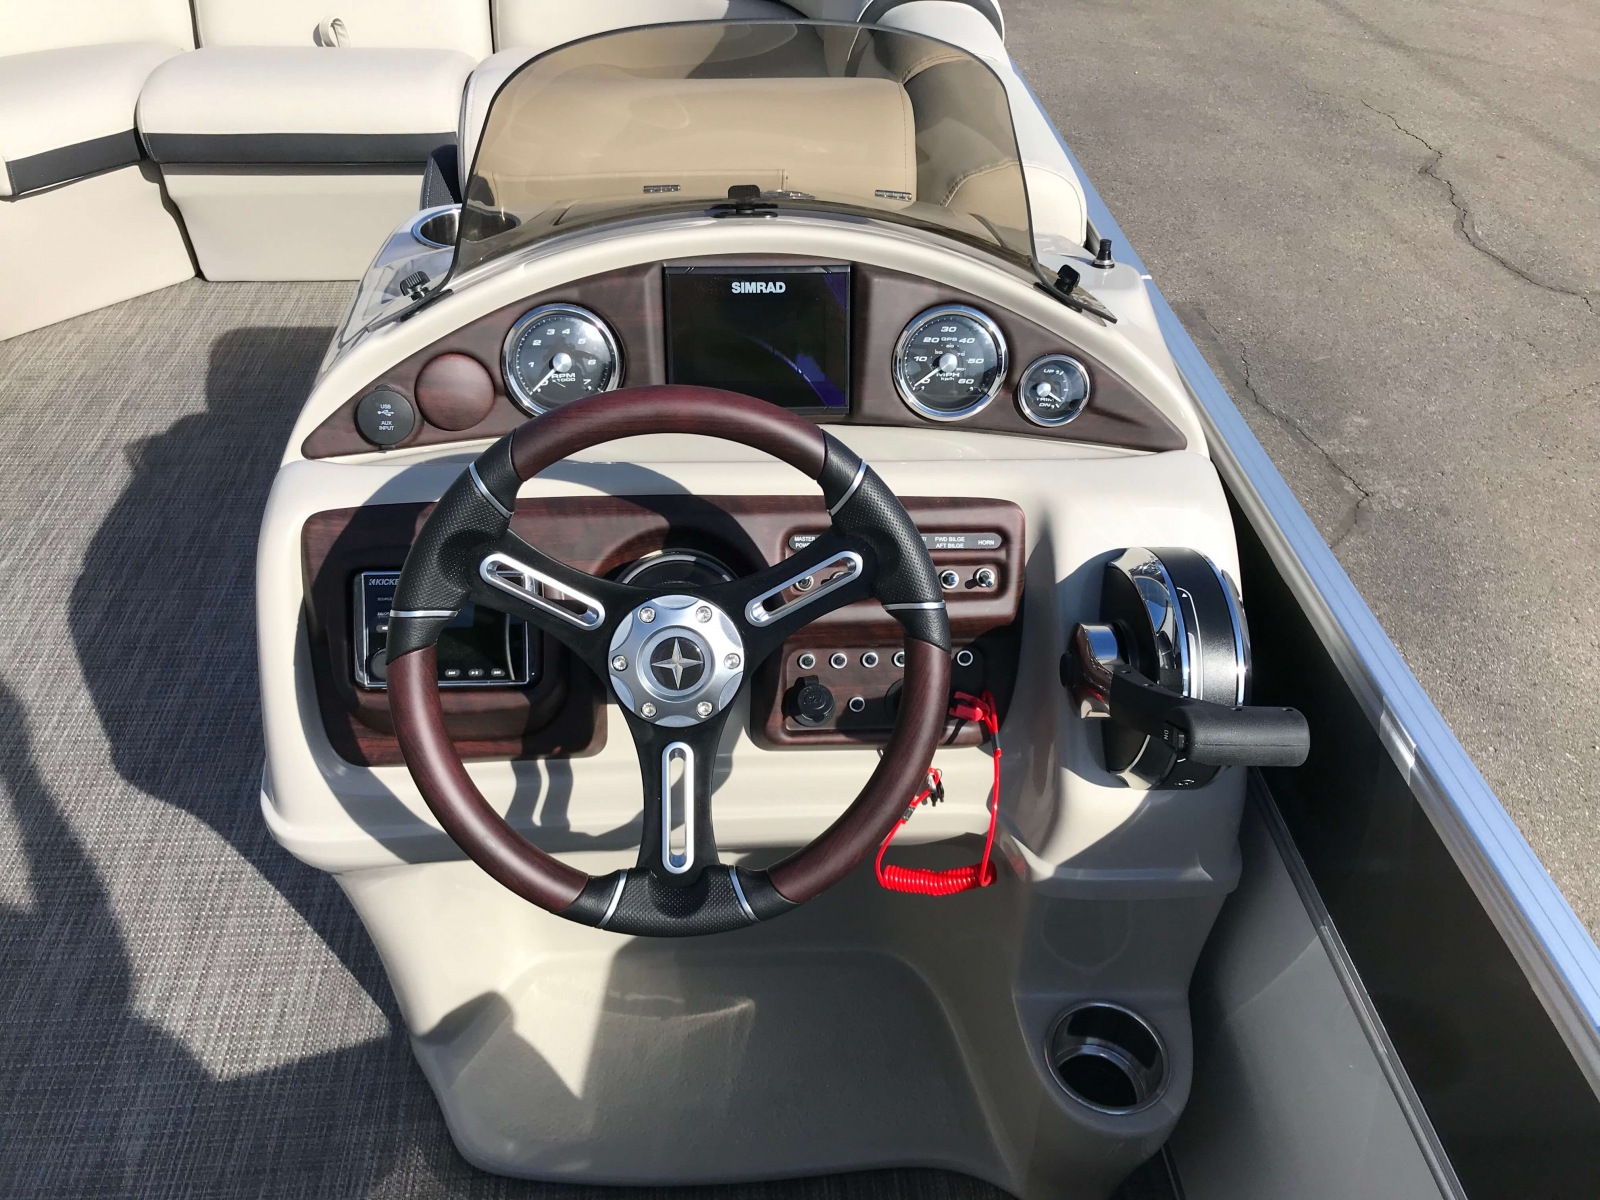 Drivers Console with Touchscreen Simrad GPS of a 2019 Berkshire 23RFX STS Pontoon